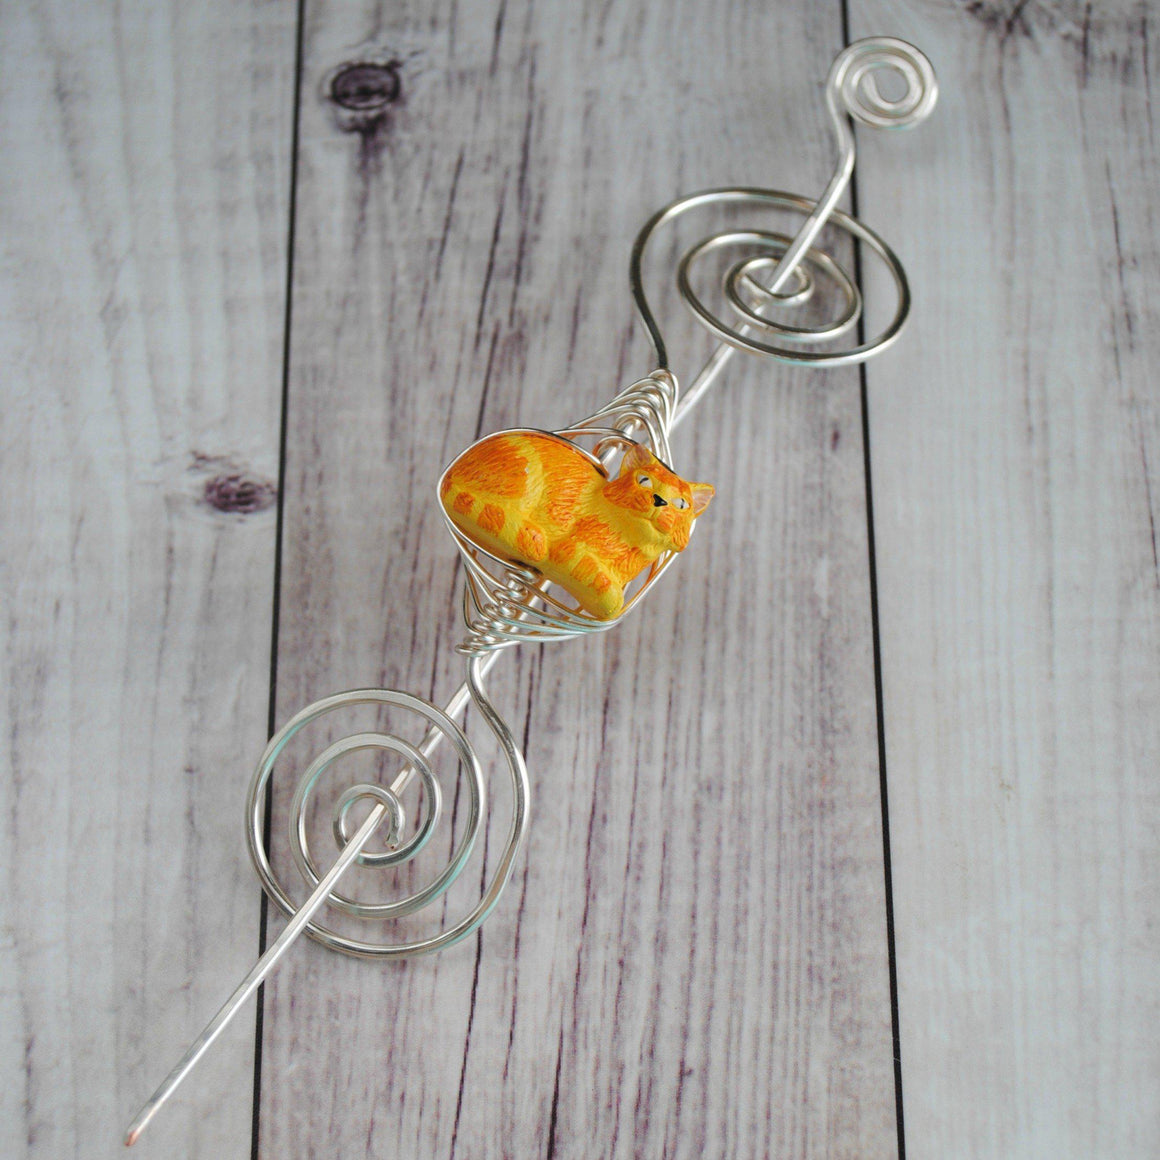 Shawl Pin, Orange Tabby Cat Shawl Pin - Large Silver - Crafty Flutterby Creations